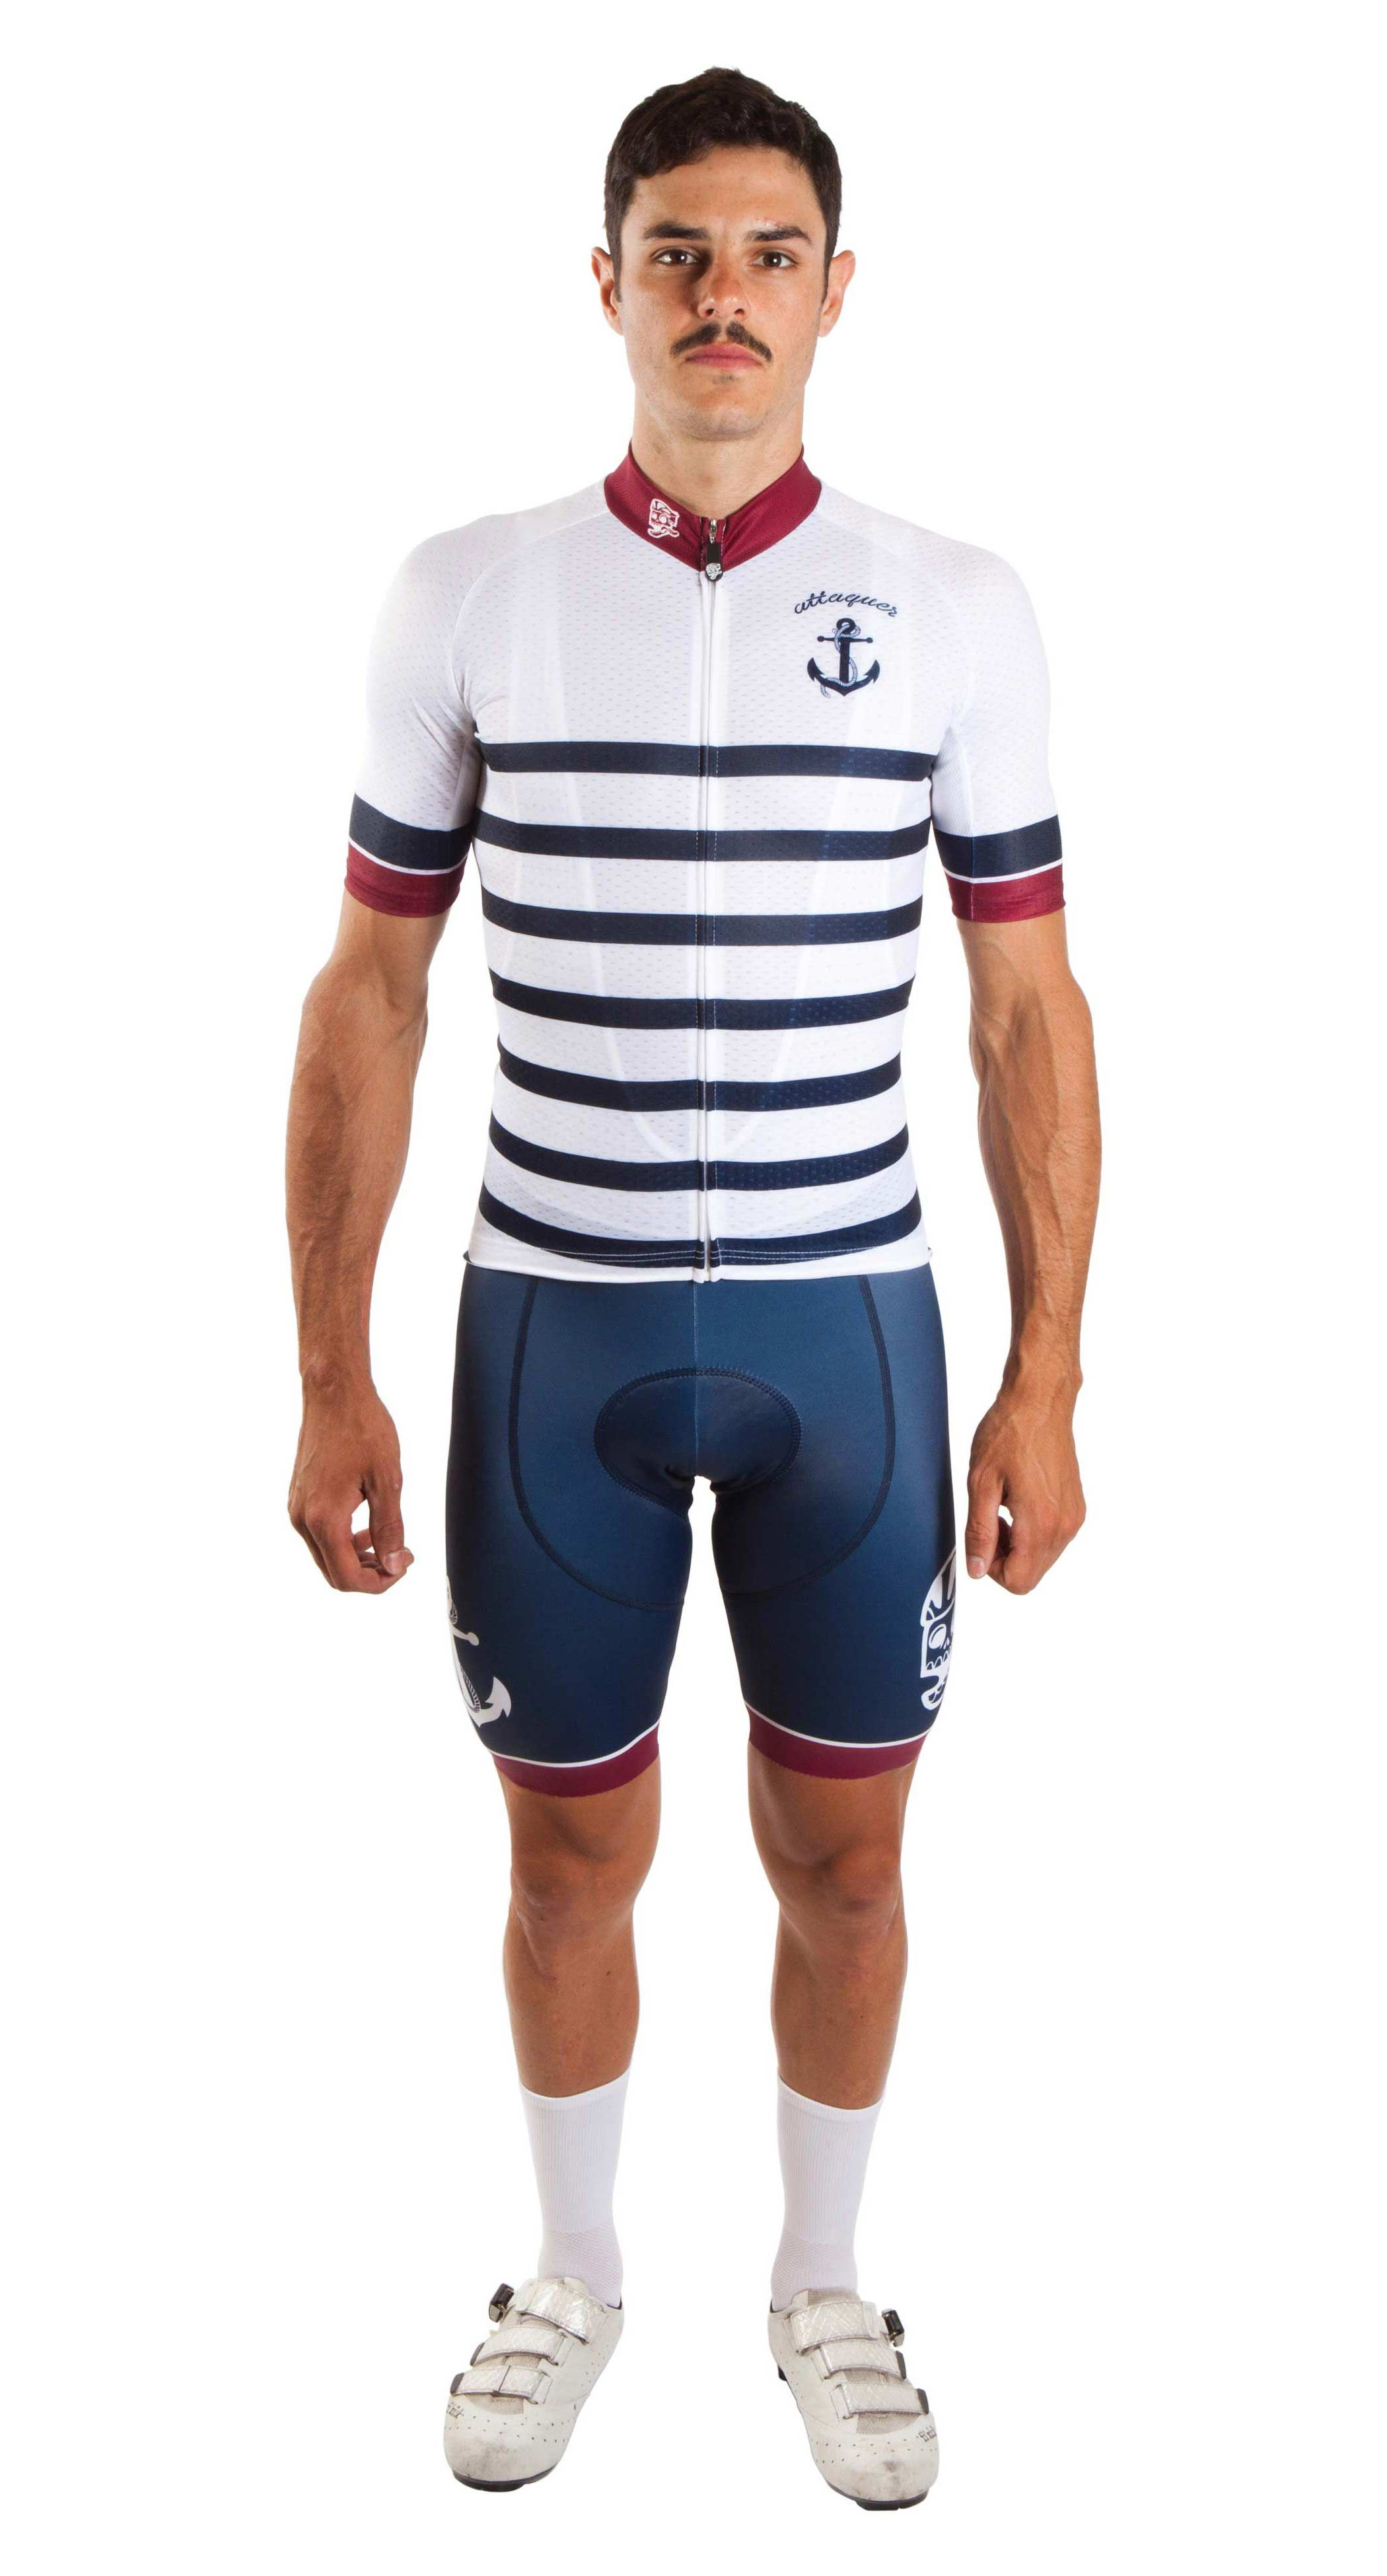 865e316d9 Nautical Anchors and Skulls by Attaquer buy online cool fashionable cycling  kit fuckyeah free shipping